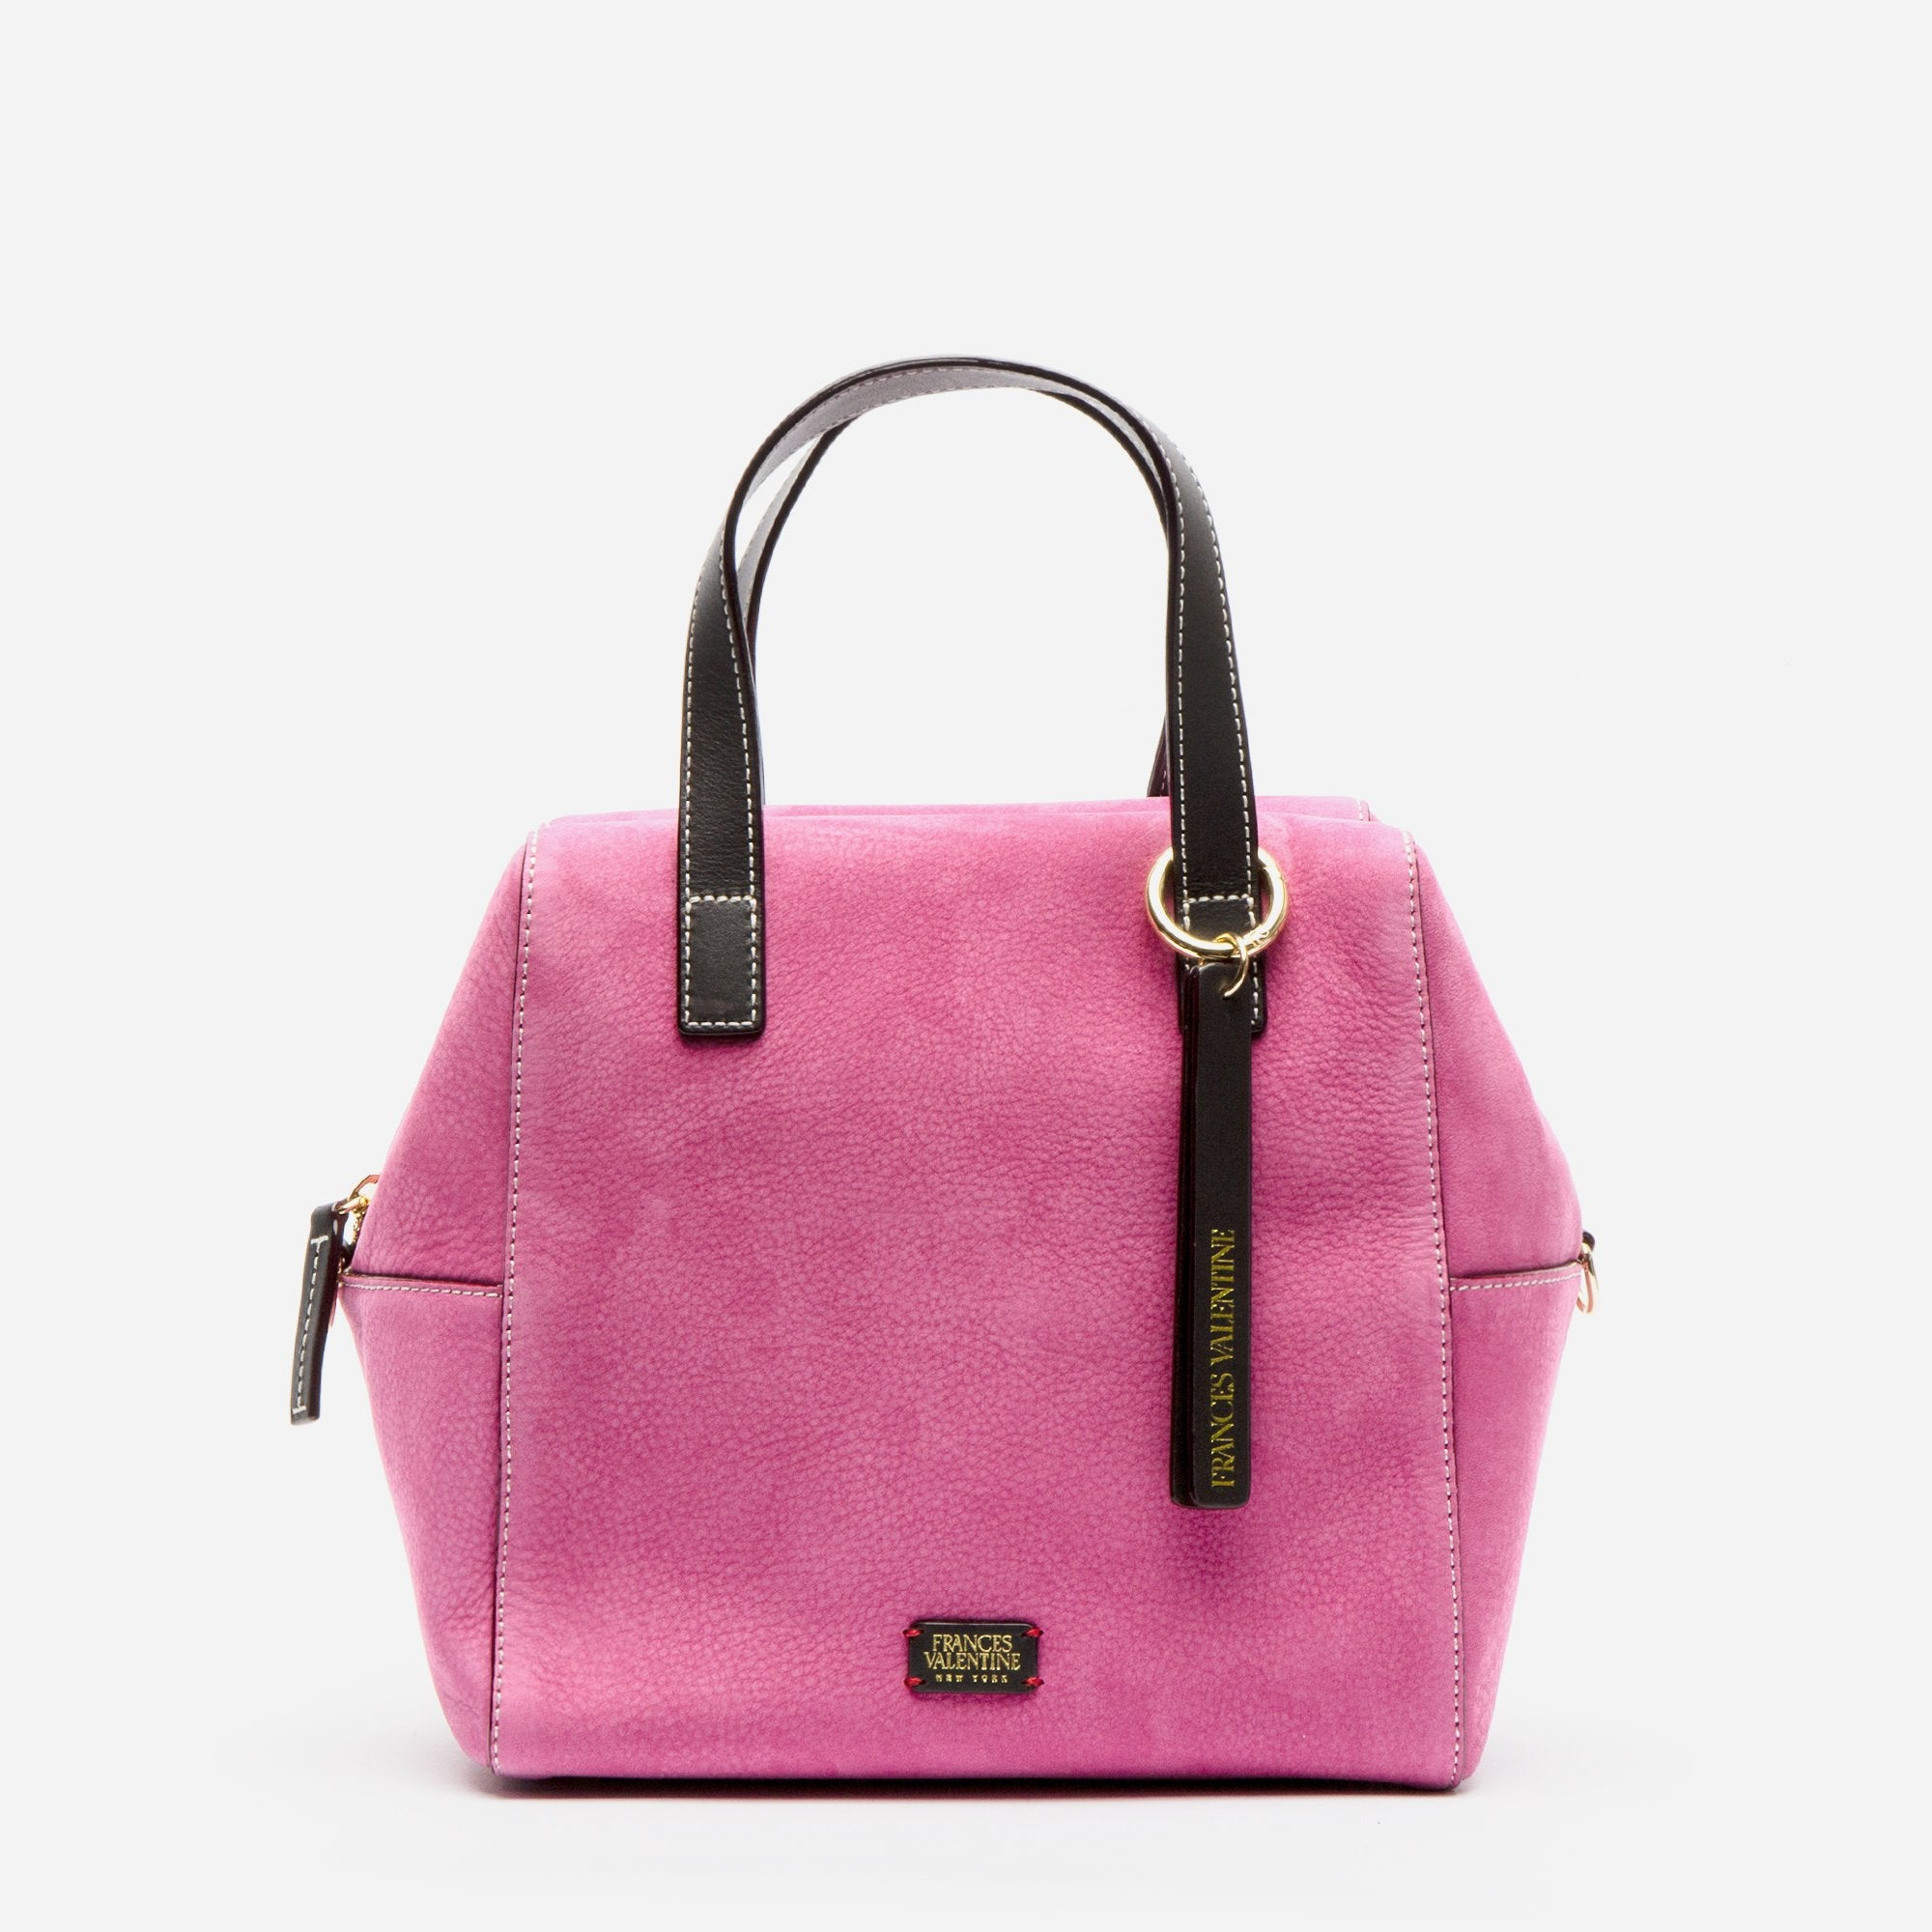 Sabrina Satchel Tumbled Nubuck Pink Chocolate